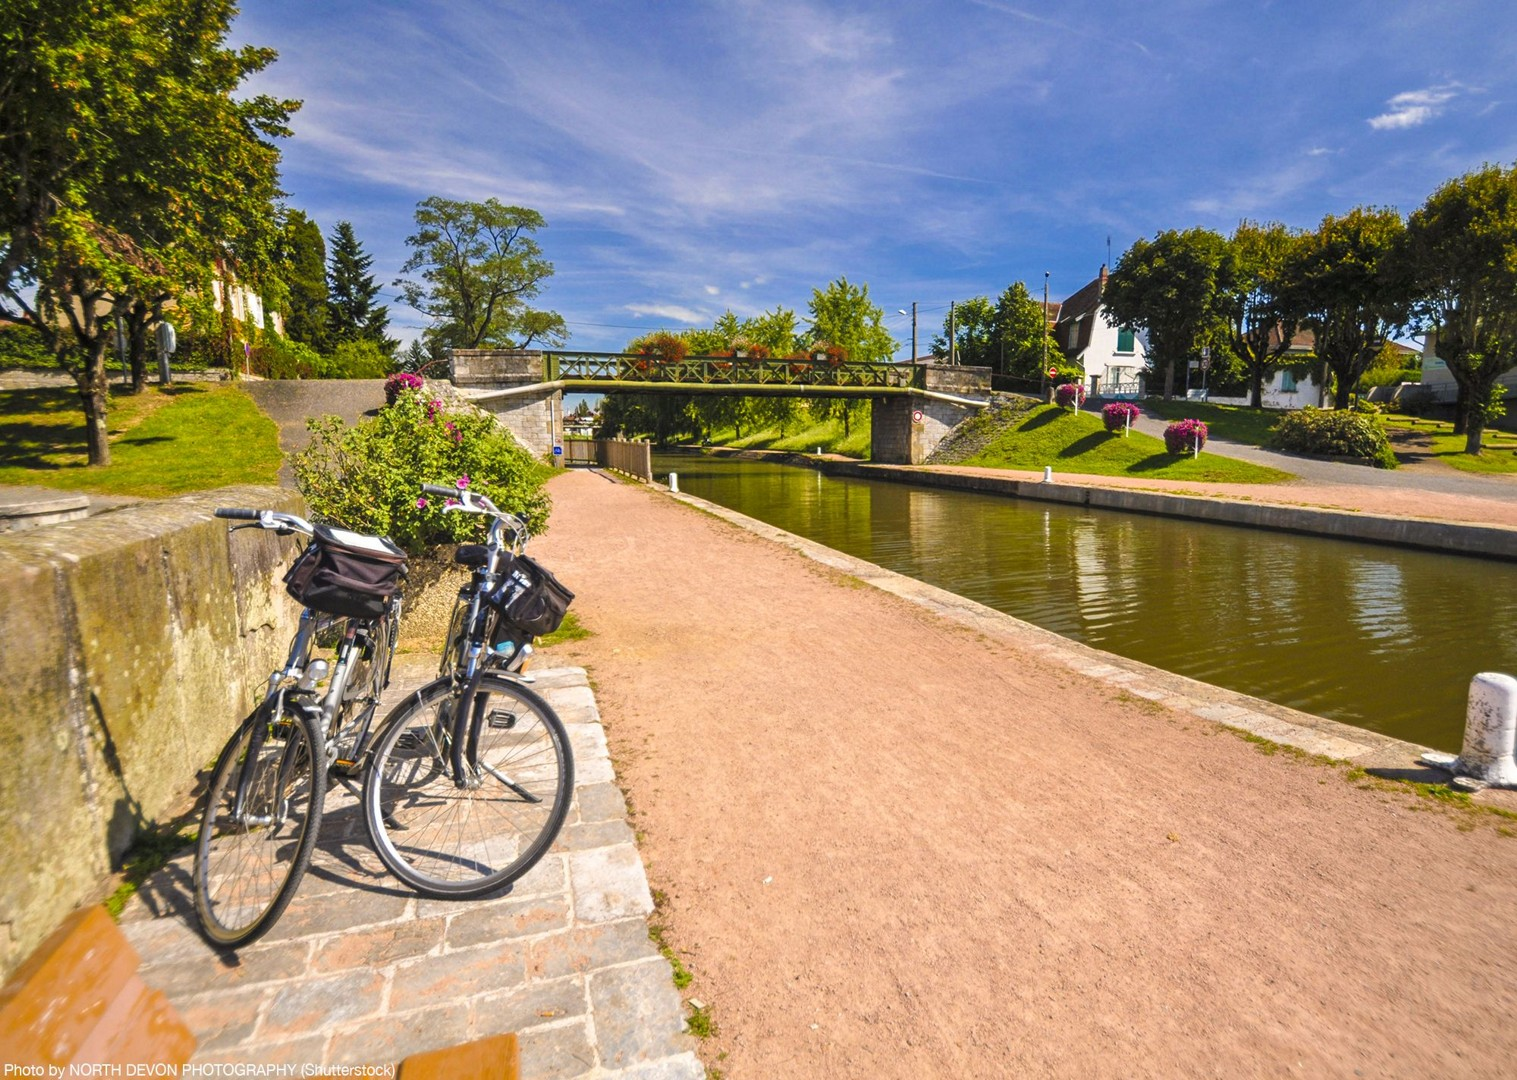 self-guided-cycling-holiday-france-burgundy-with-saddle-skedaddle.jpg - France - Burgundy - Caves and Canals - Self-Guided Leisure Cycling Holiday - Leisure Cycling